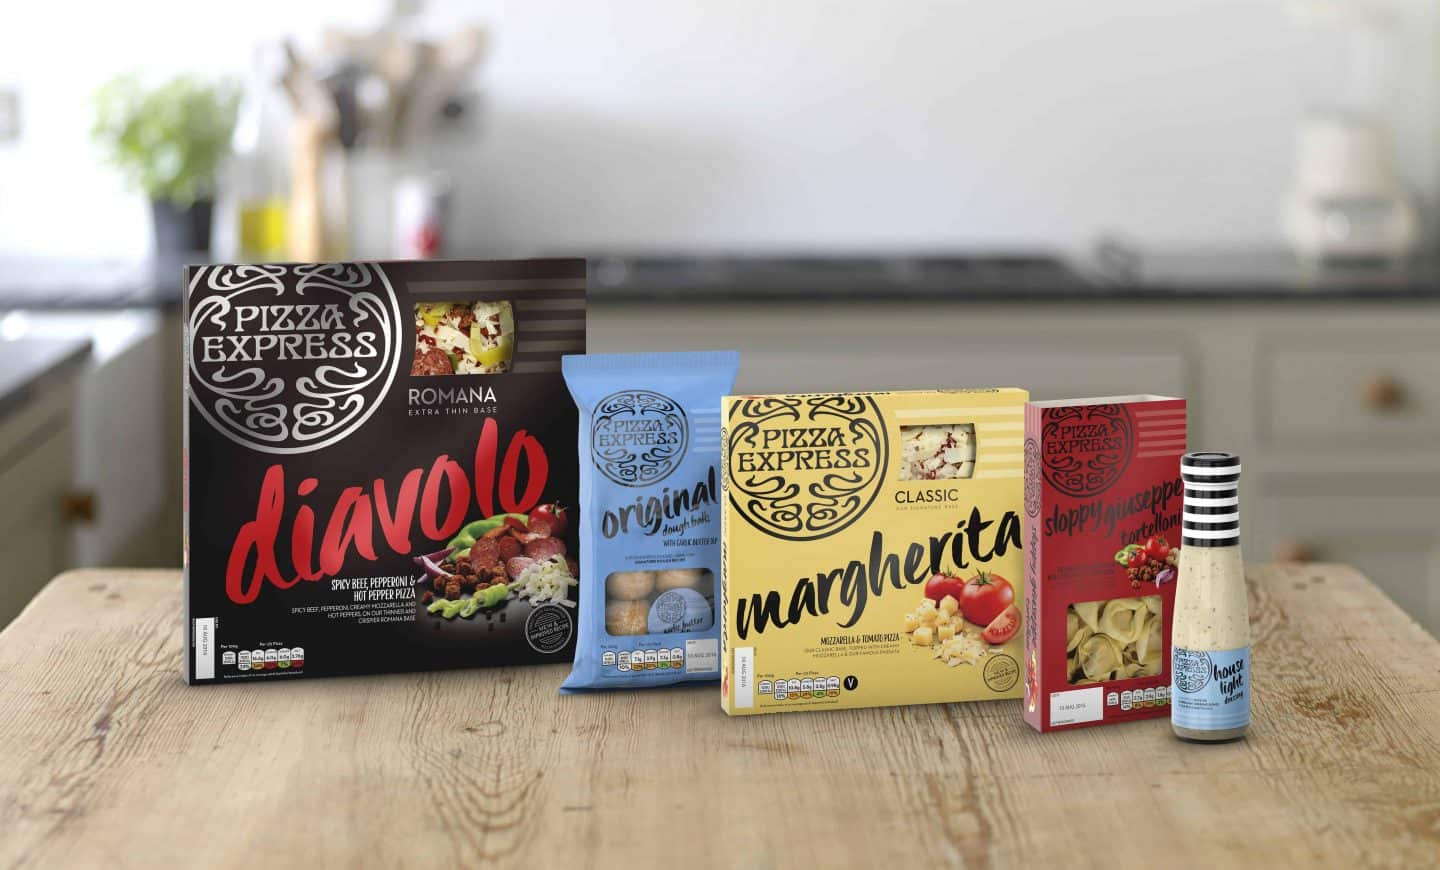 News: Pizza Express to launch gluten free pizza in Sainsbury's